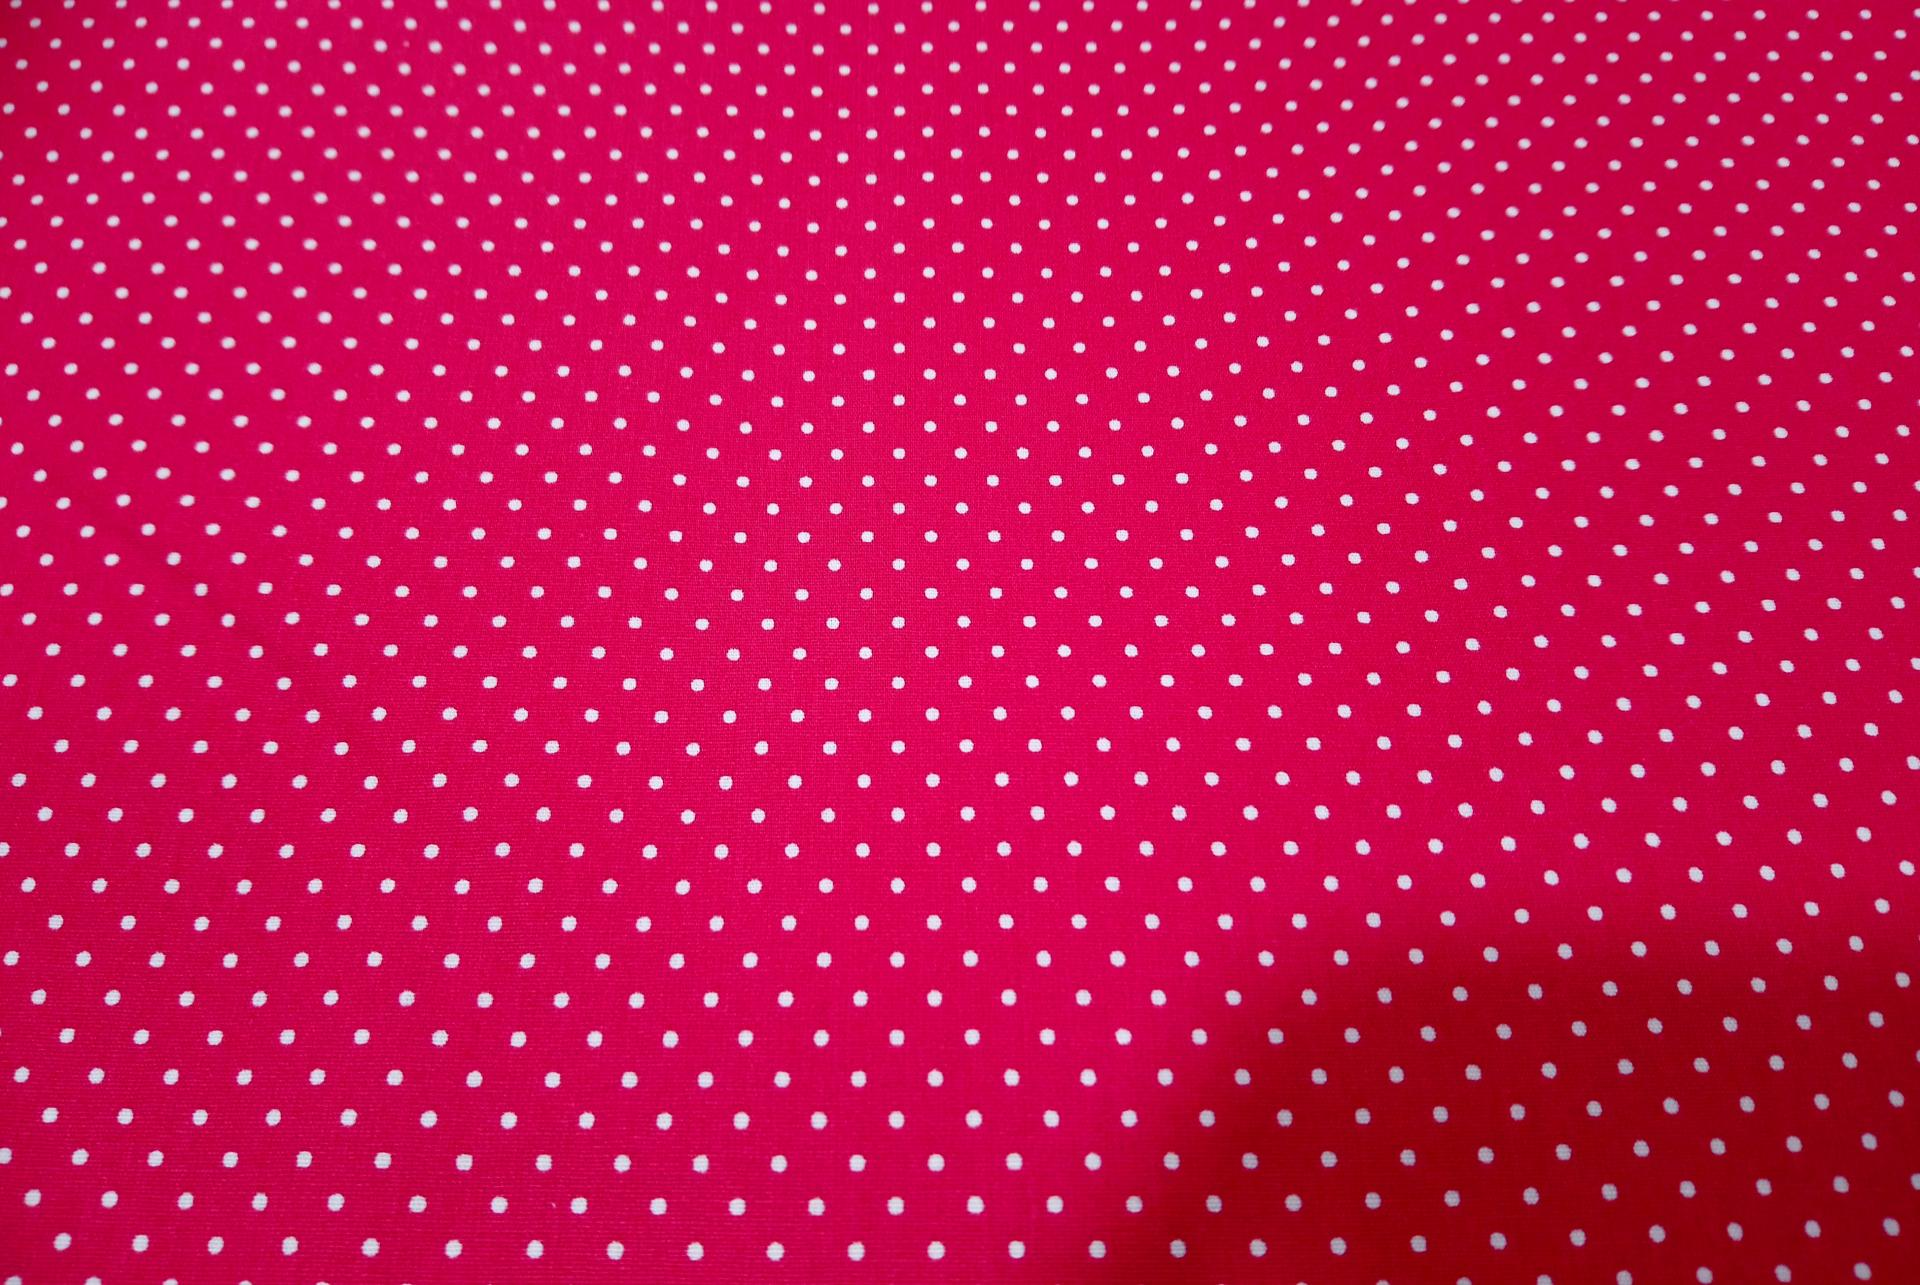 Pois rouge